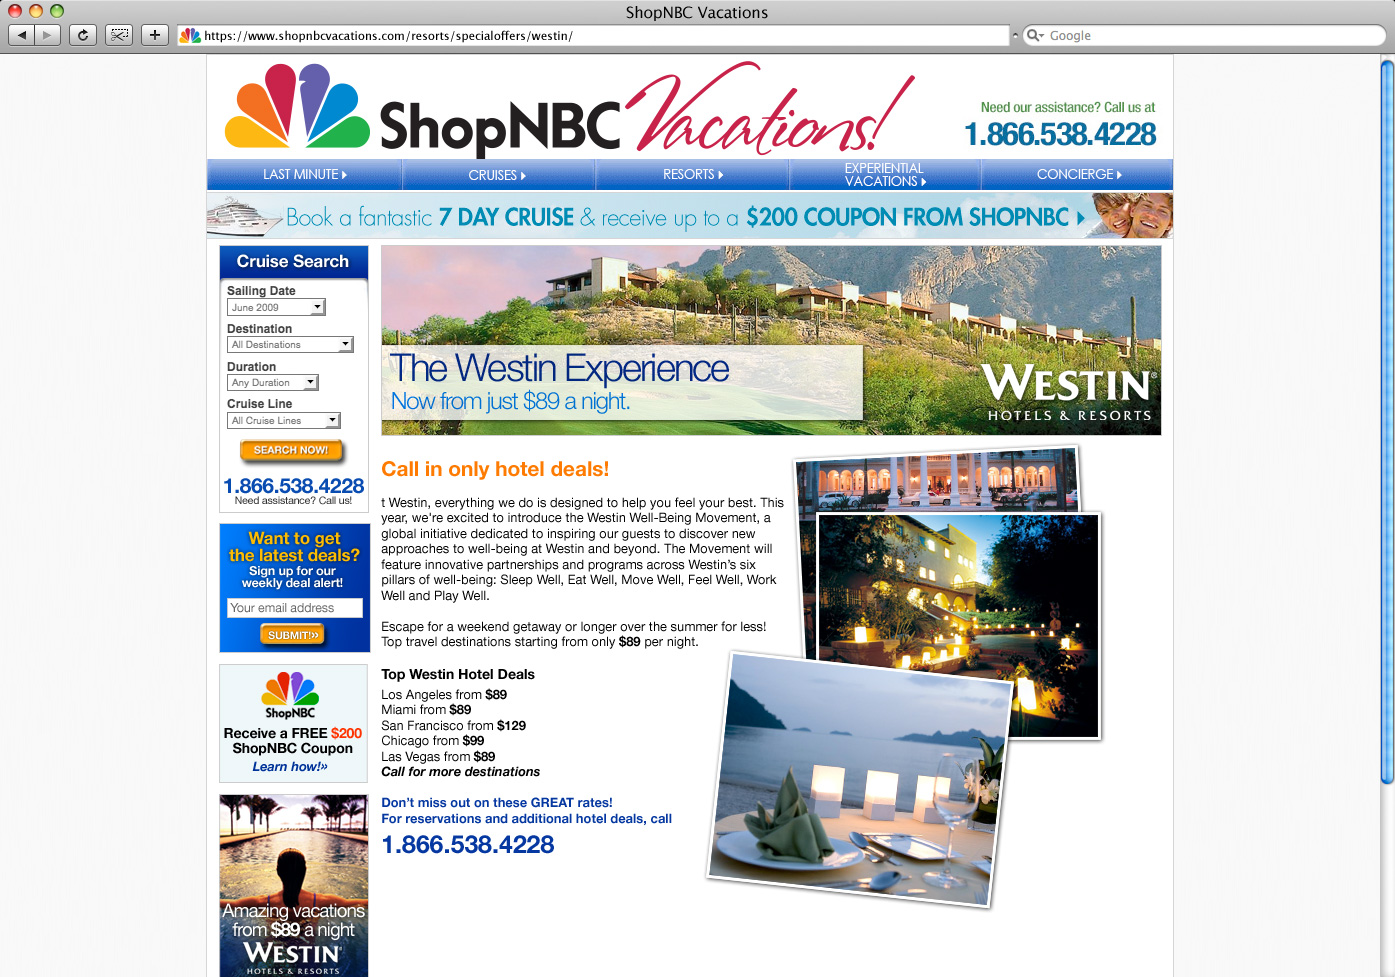 ShopNBC-Vactions-Westin